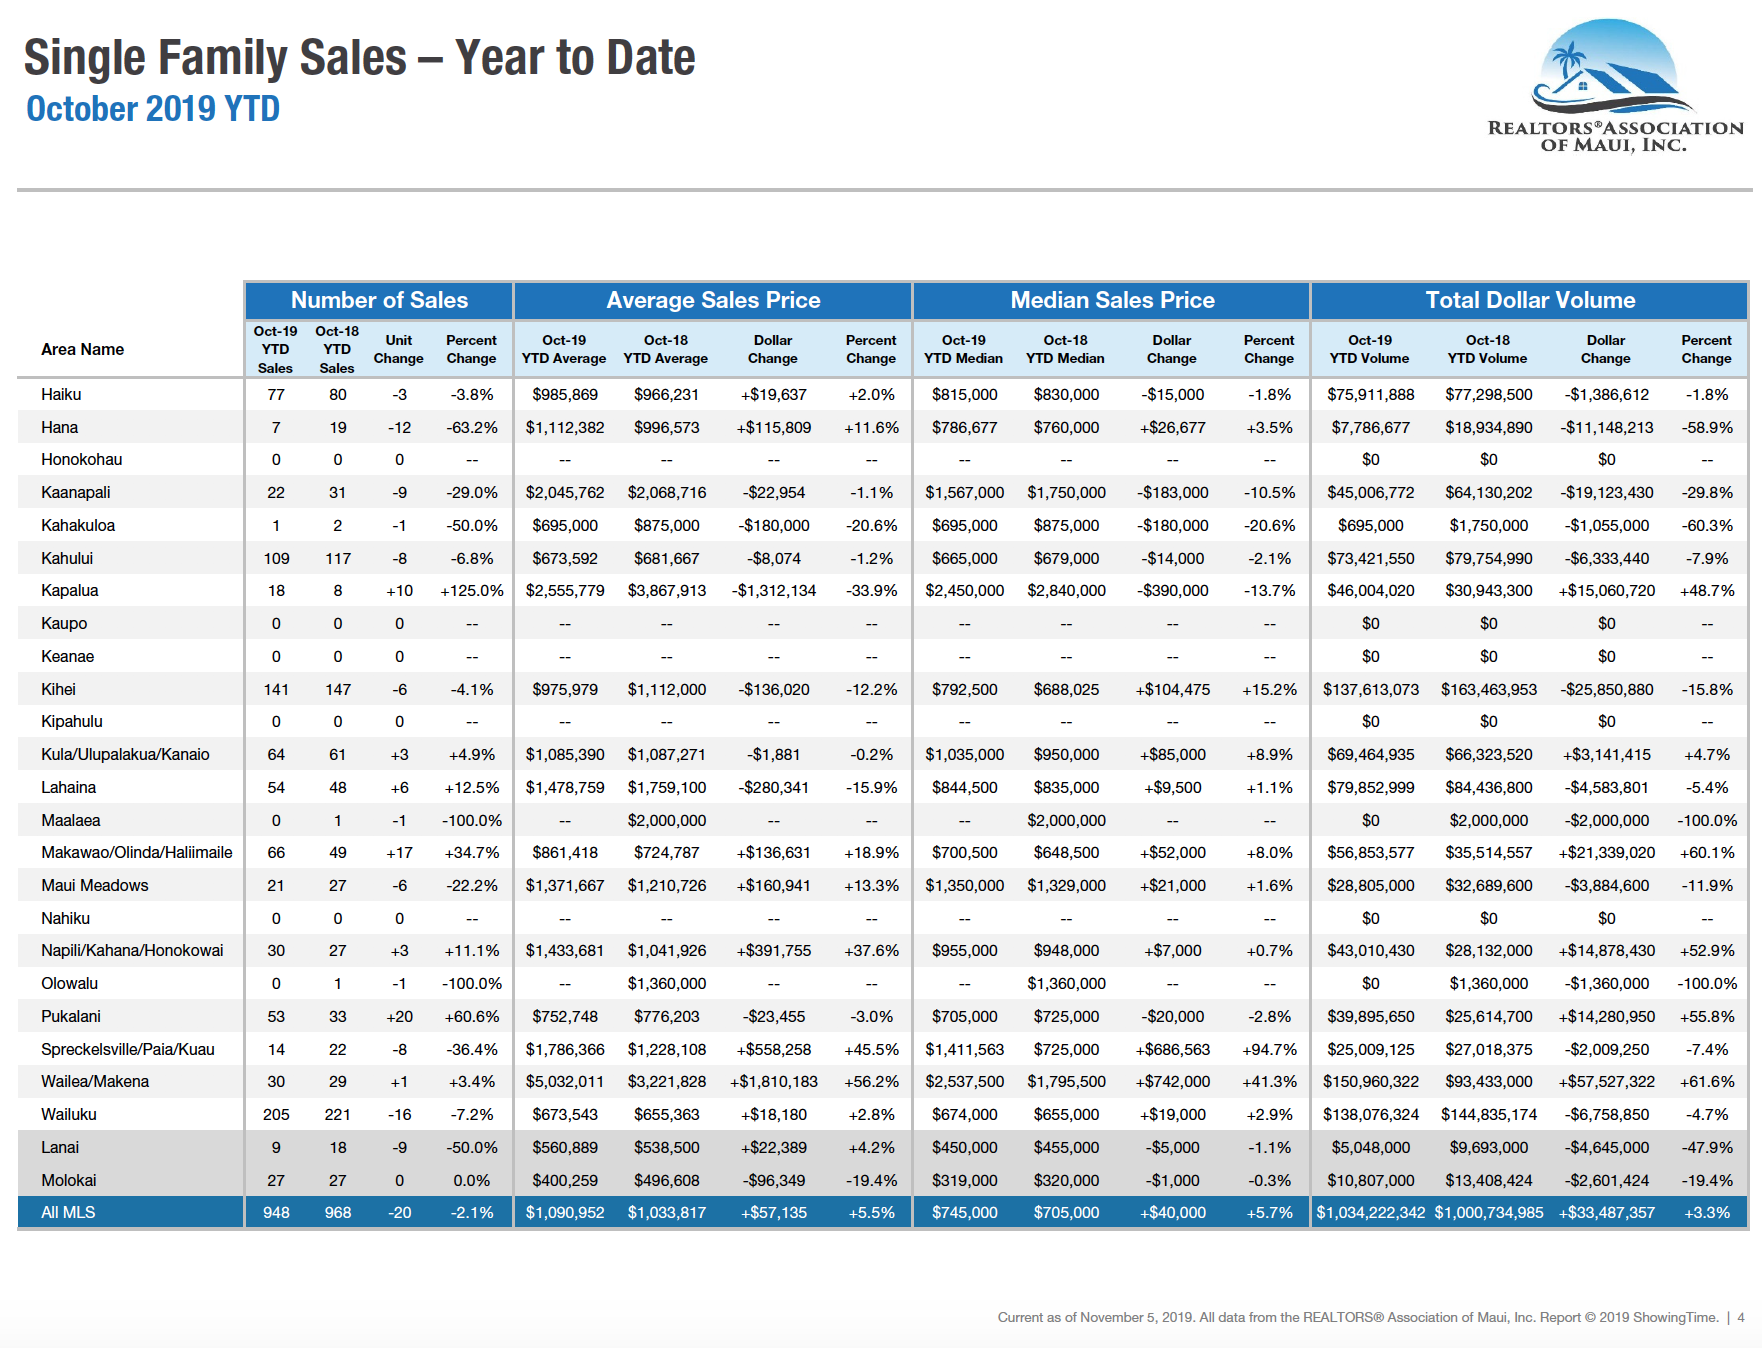 Maui single family home sales year to date through October 2019.